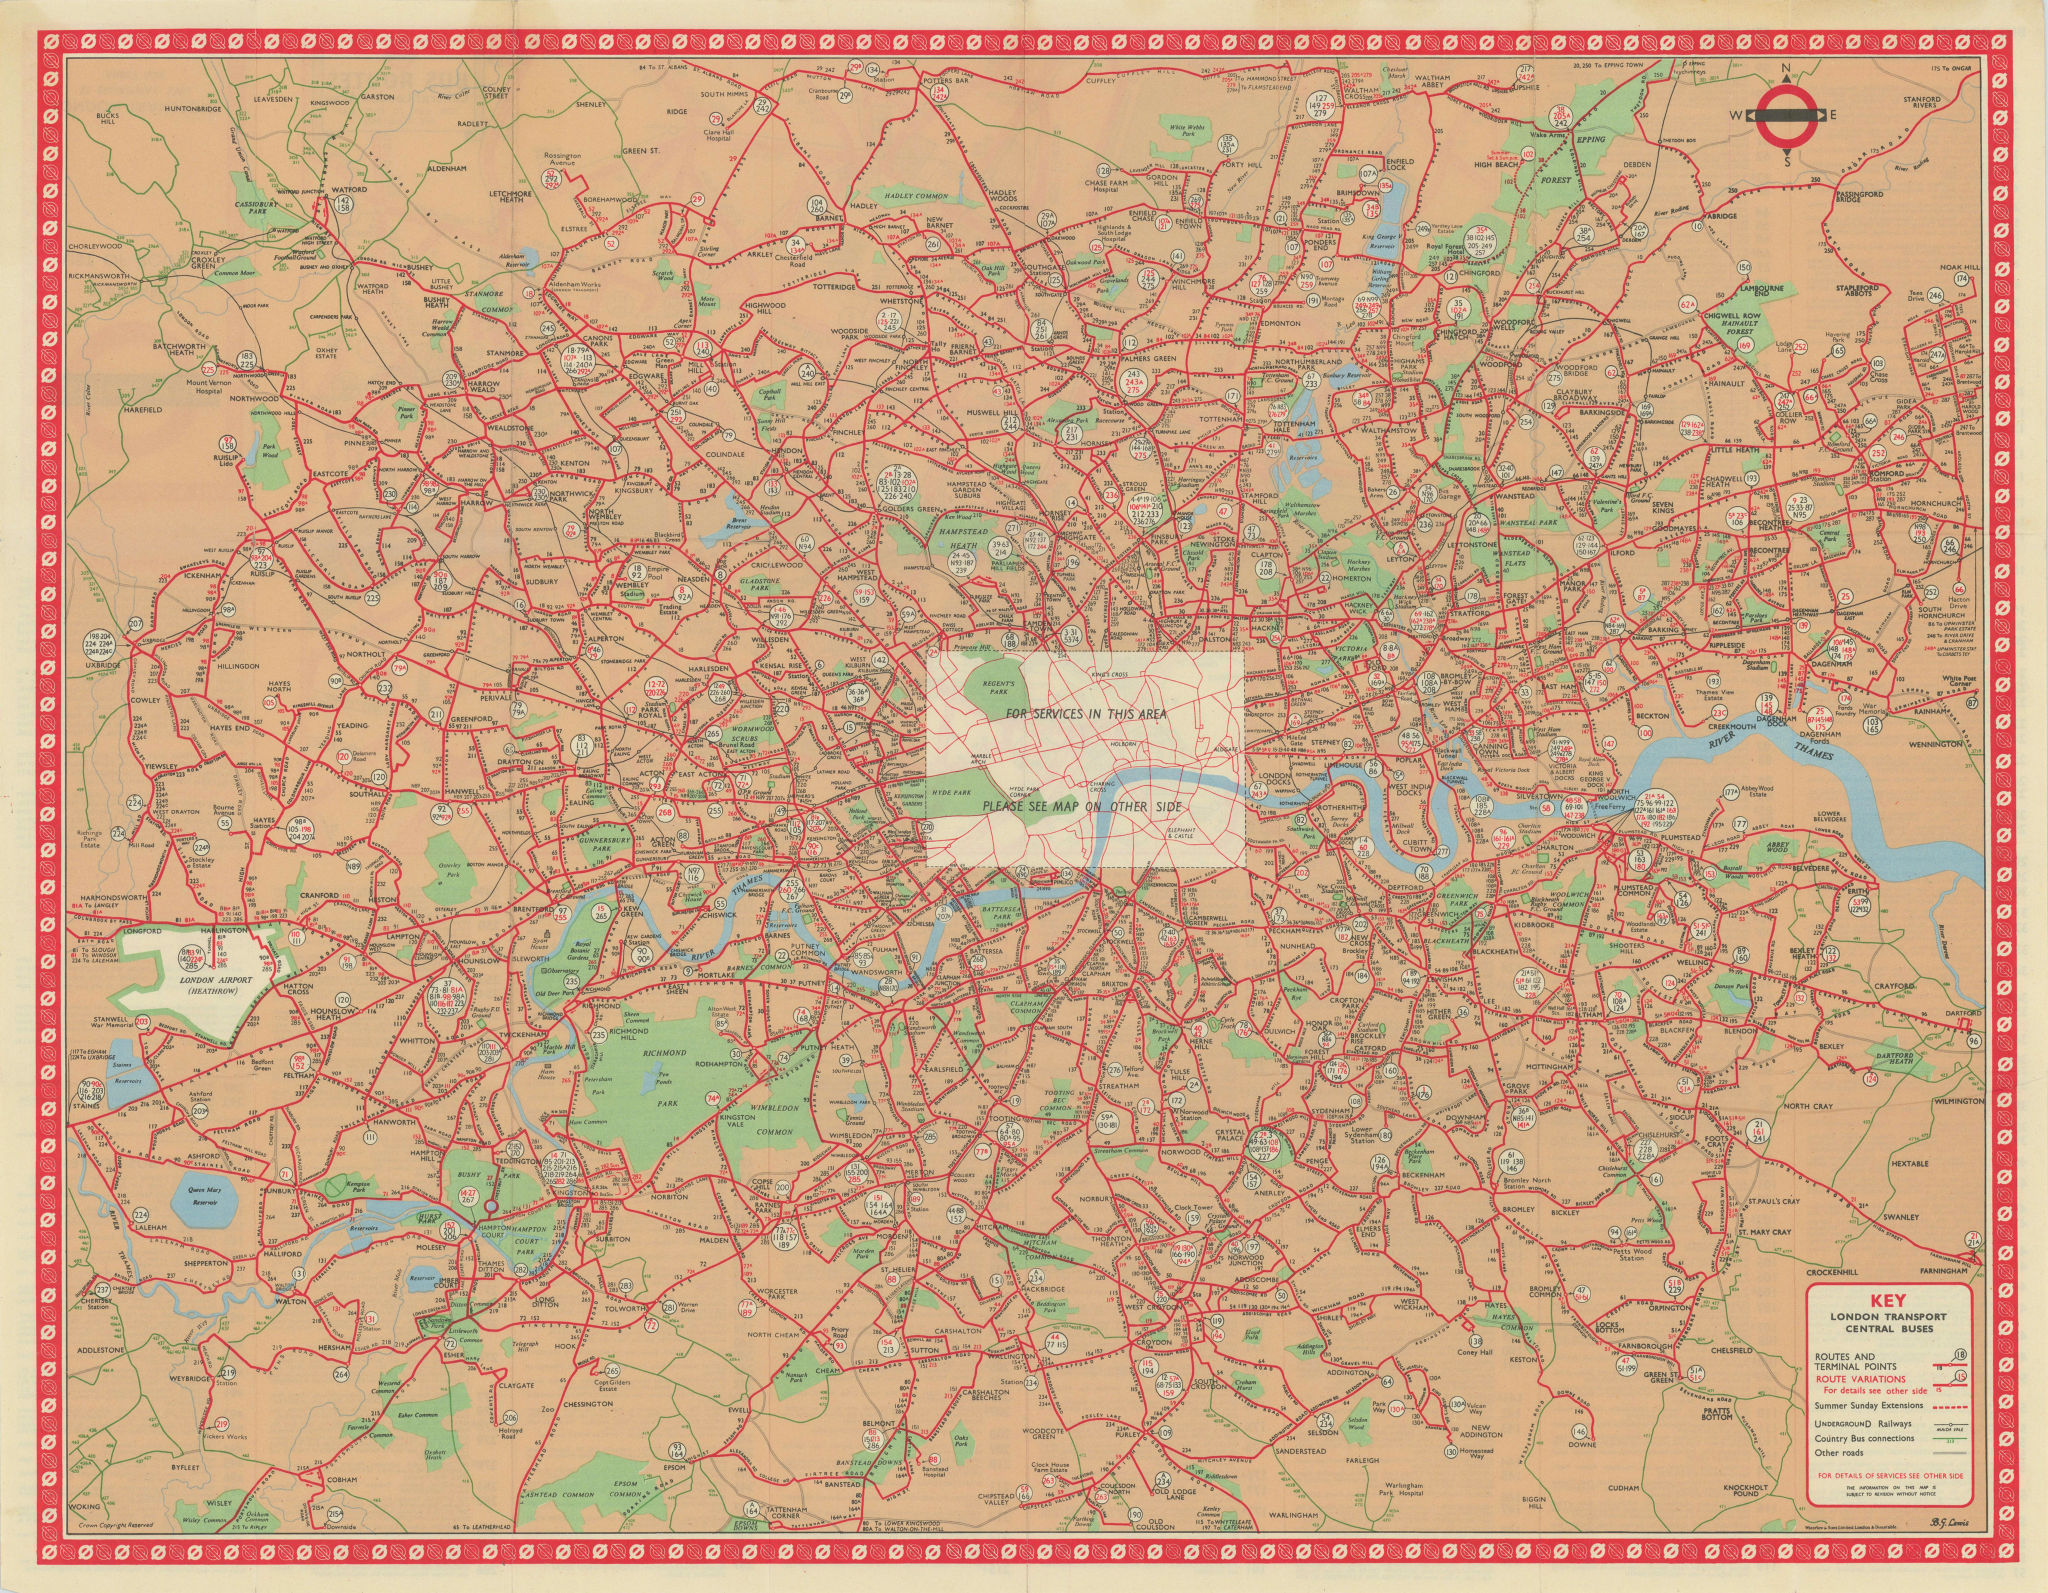 London Transport Central Buses map and list of routes. LEWIS #3 1962 old